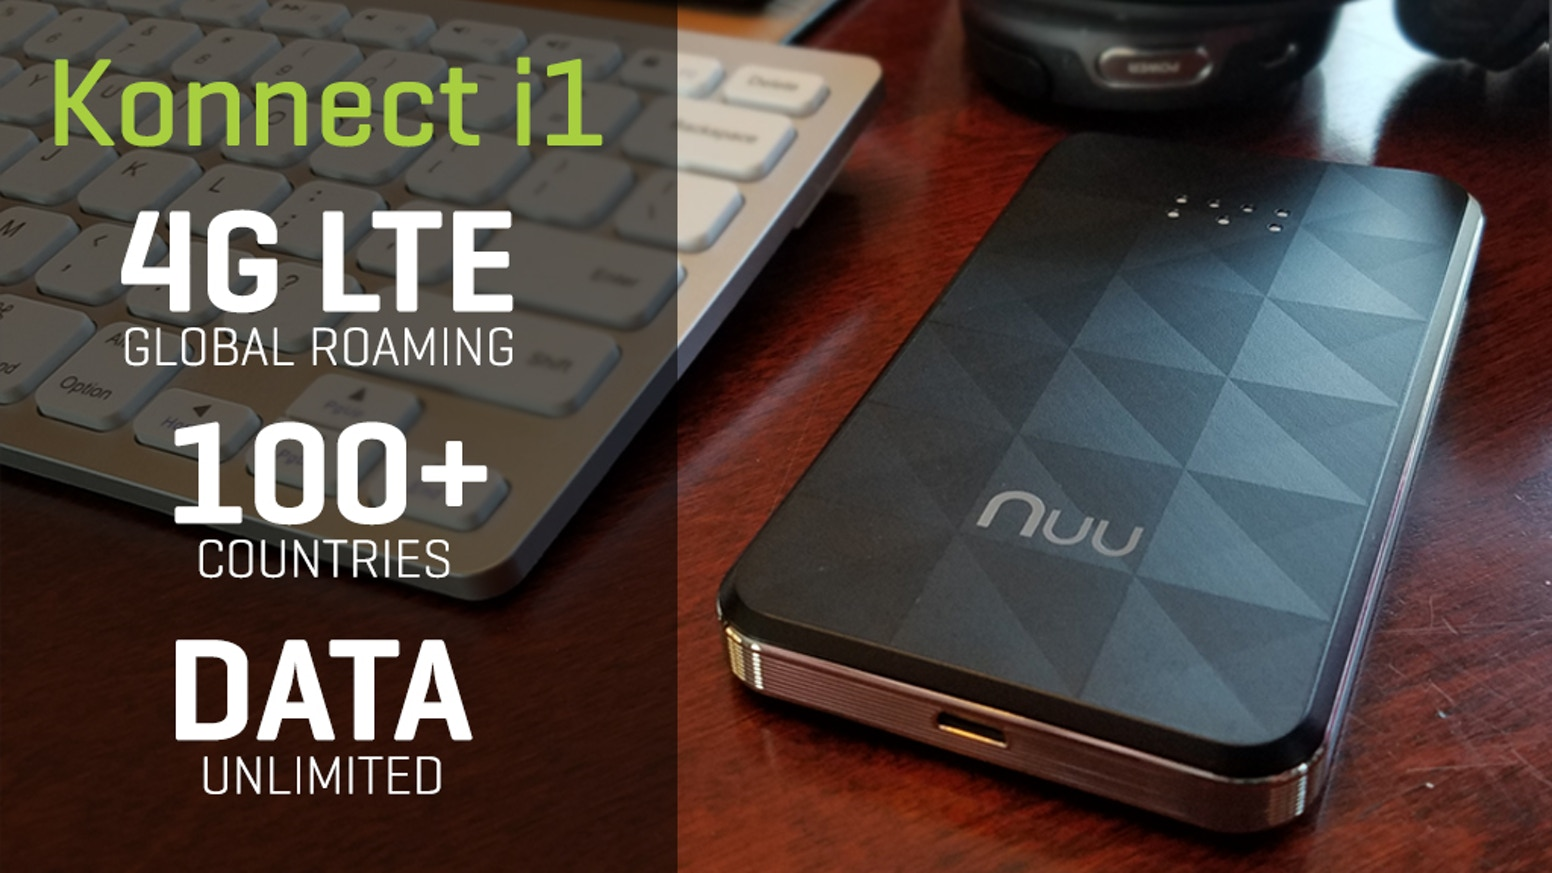 Konnect i1: Stay Connected Worldwide with 4G LTE Wi-Fi by NUU Mobile